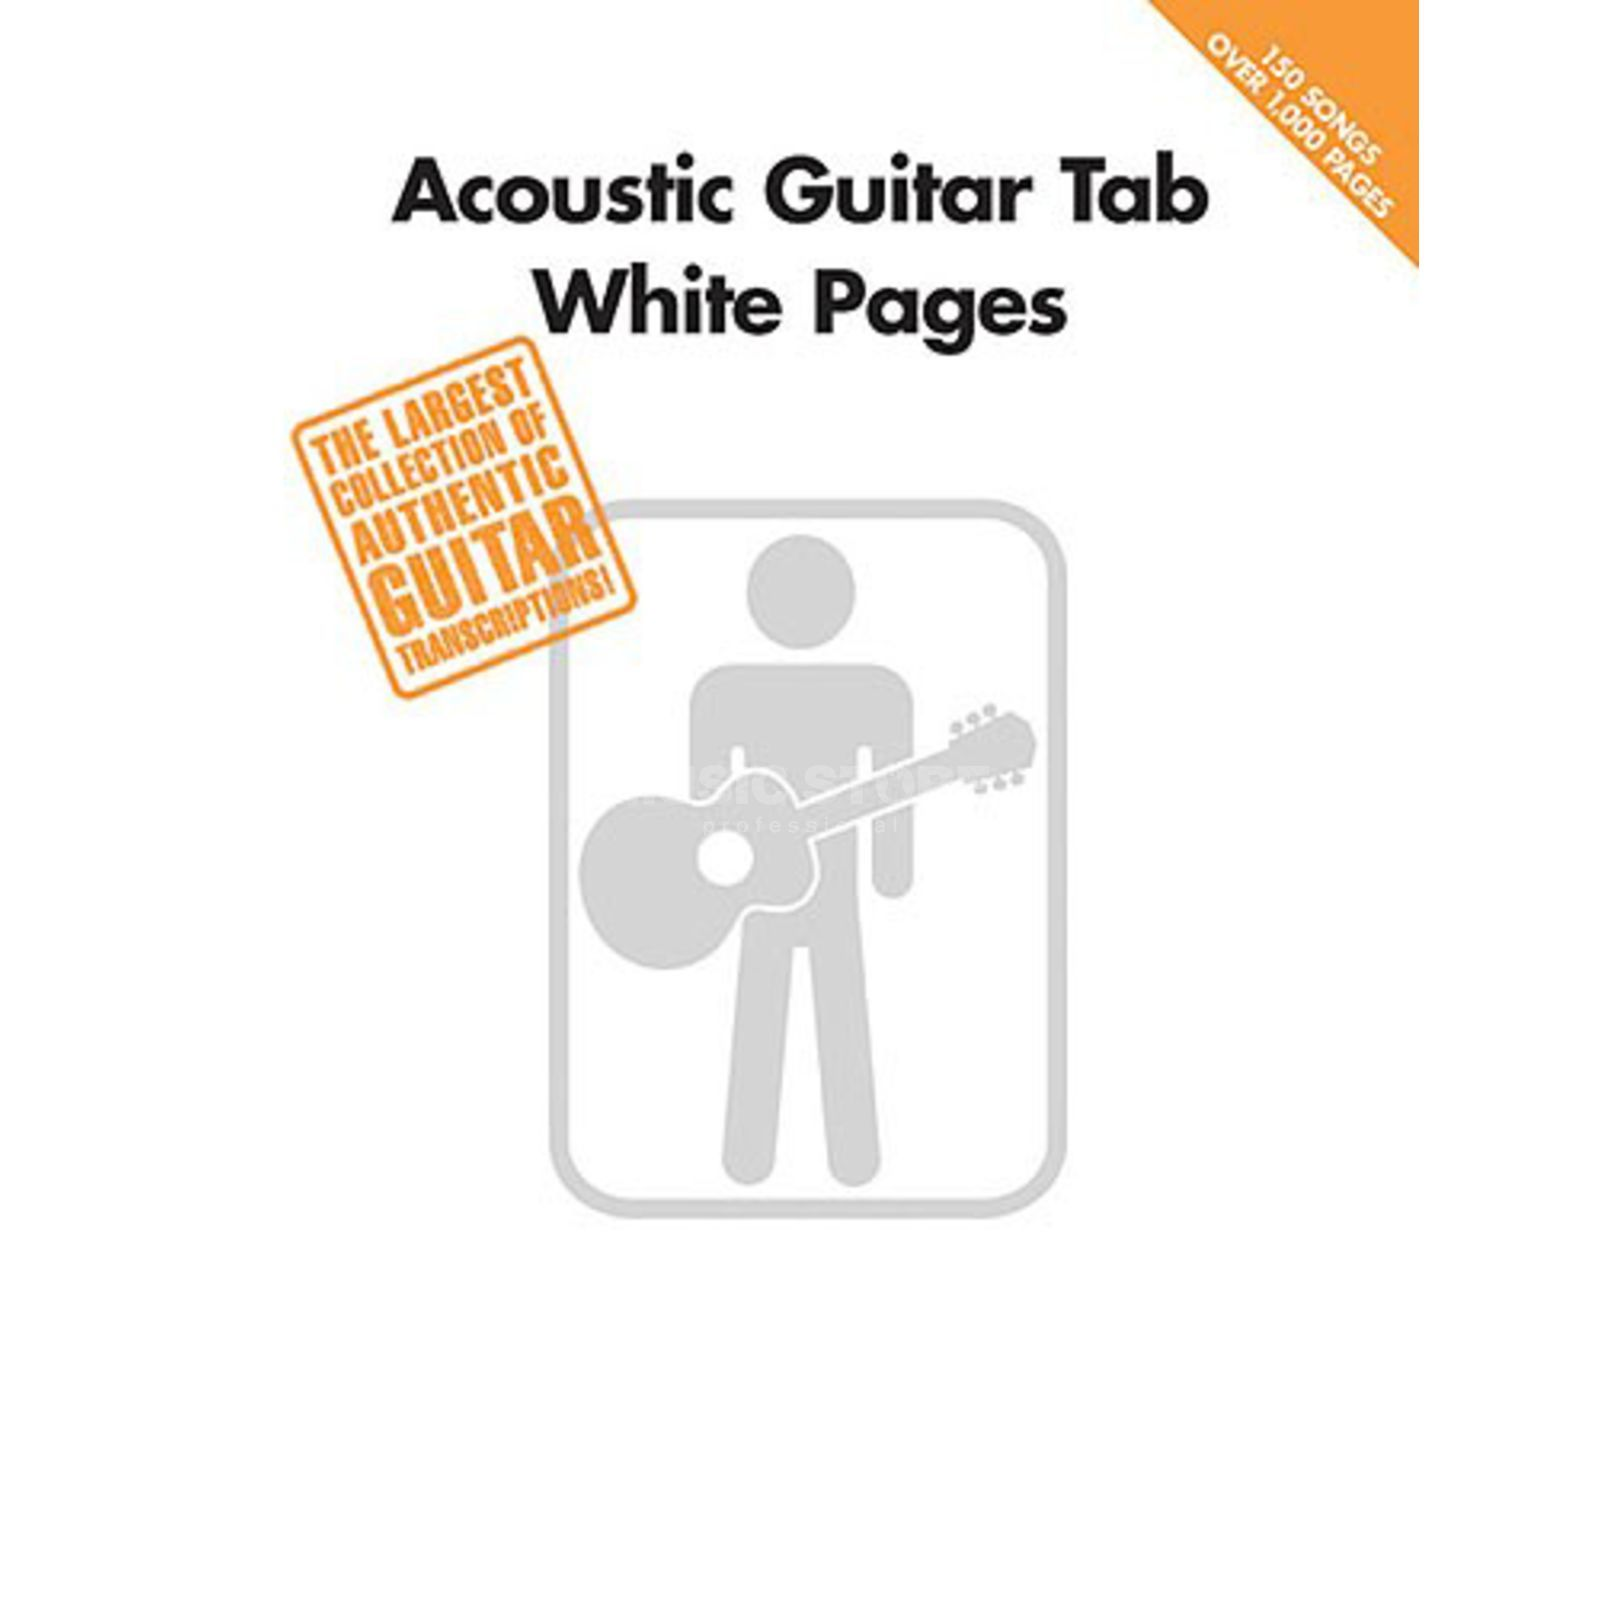 Hal Leonard Acoustic Guitar Tab White Pages Produktbild